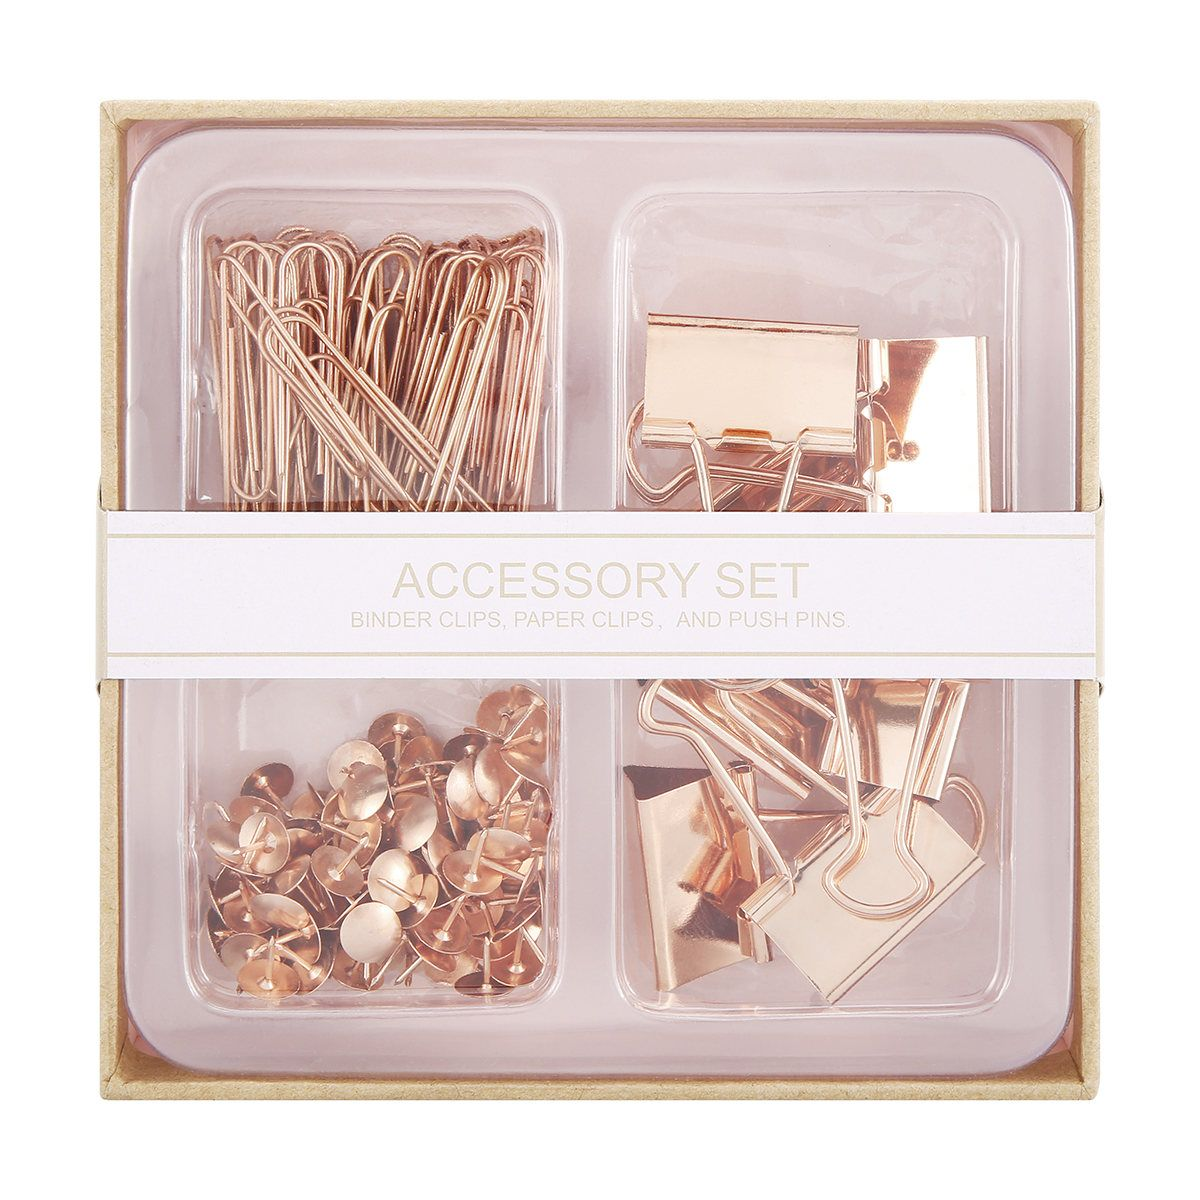 Candle Making Kit Kmart Accessory Set Rose Gold Kmart Stationary Gold Bedroom